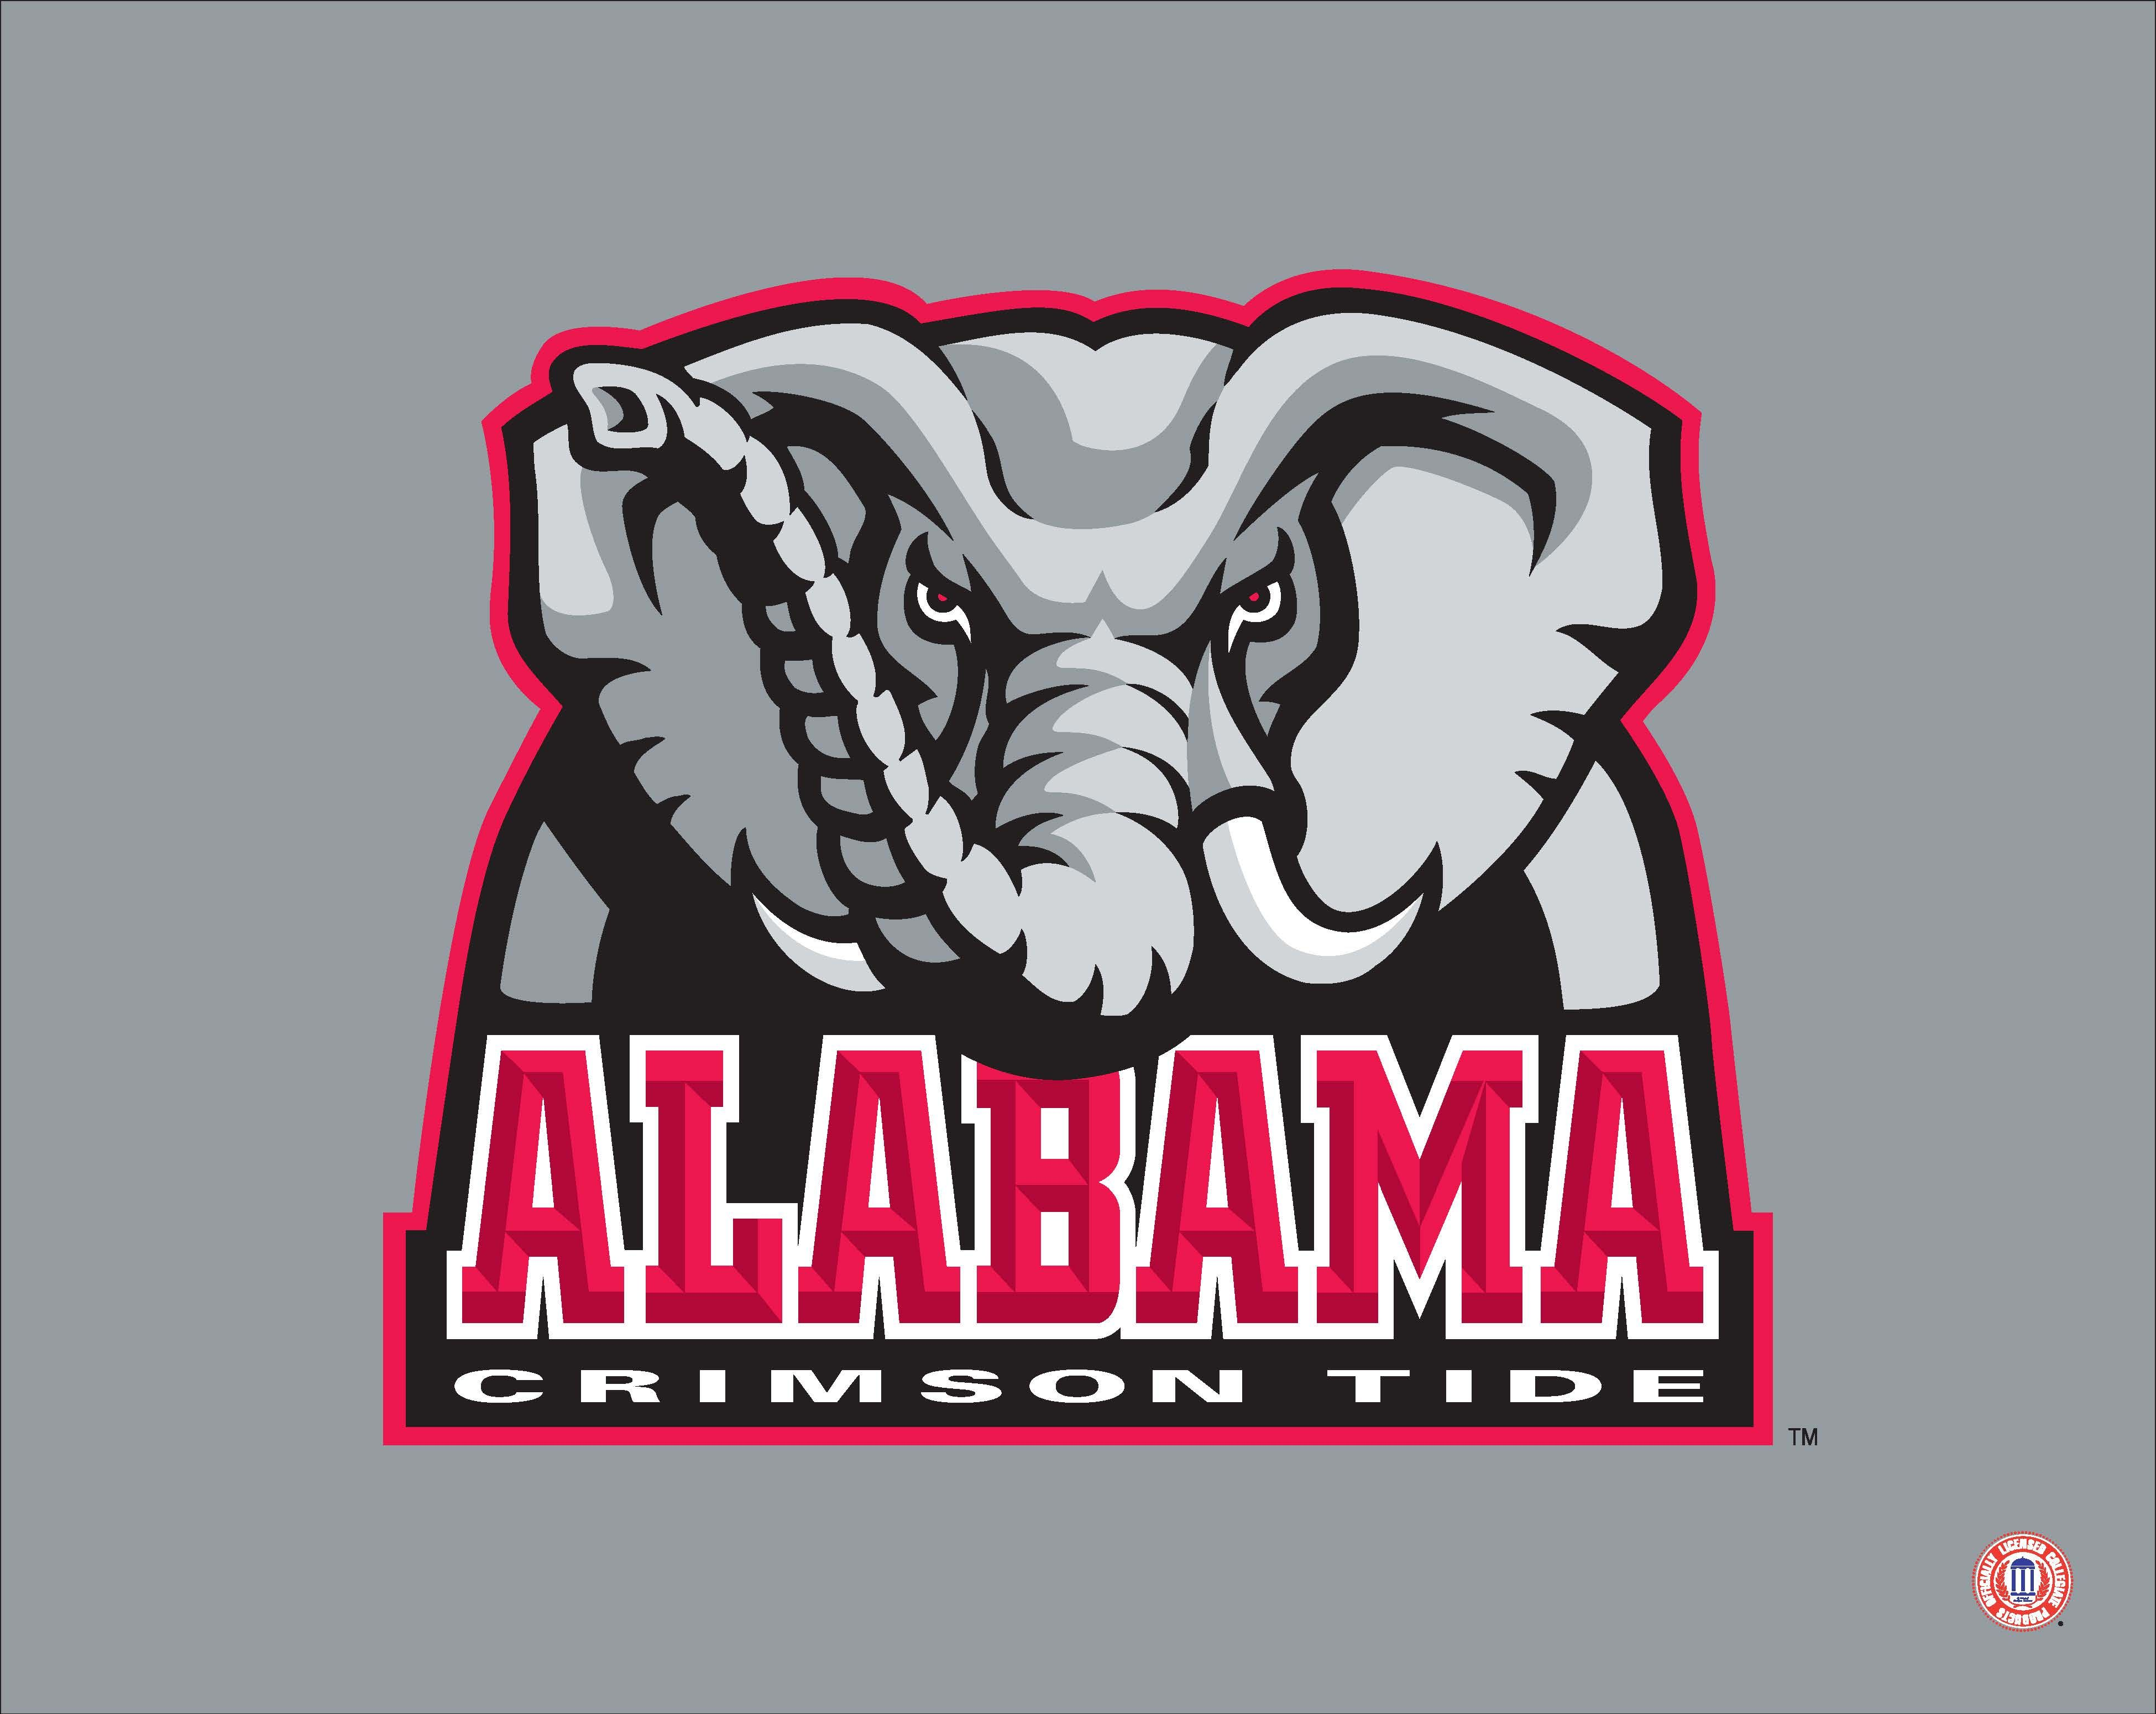 Pin By Artissimo Sports Ent On College Sports Alabama Crimson Tide Crimson Tide Alabama Crimson